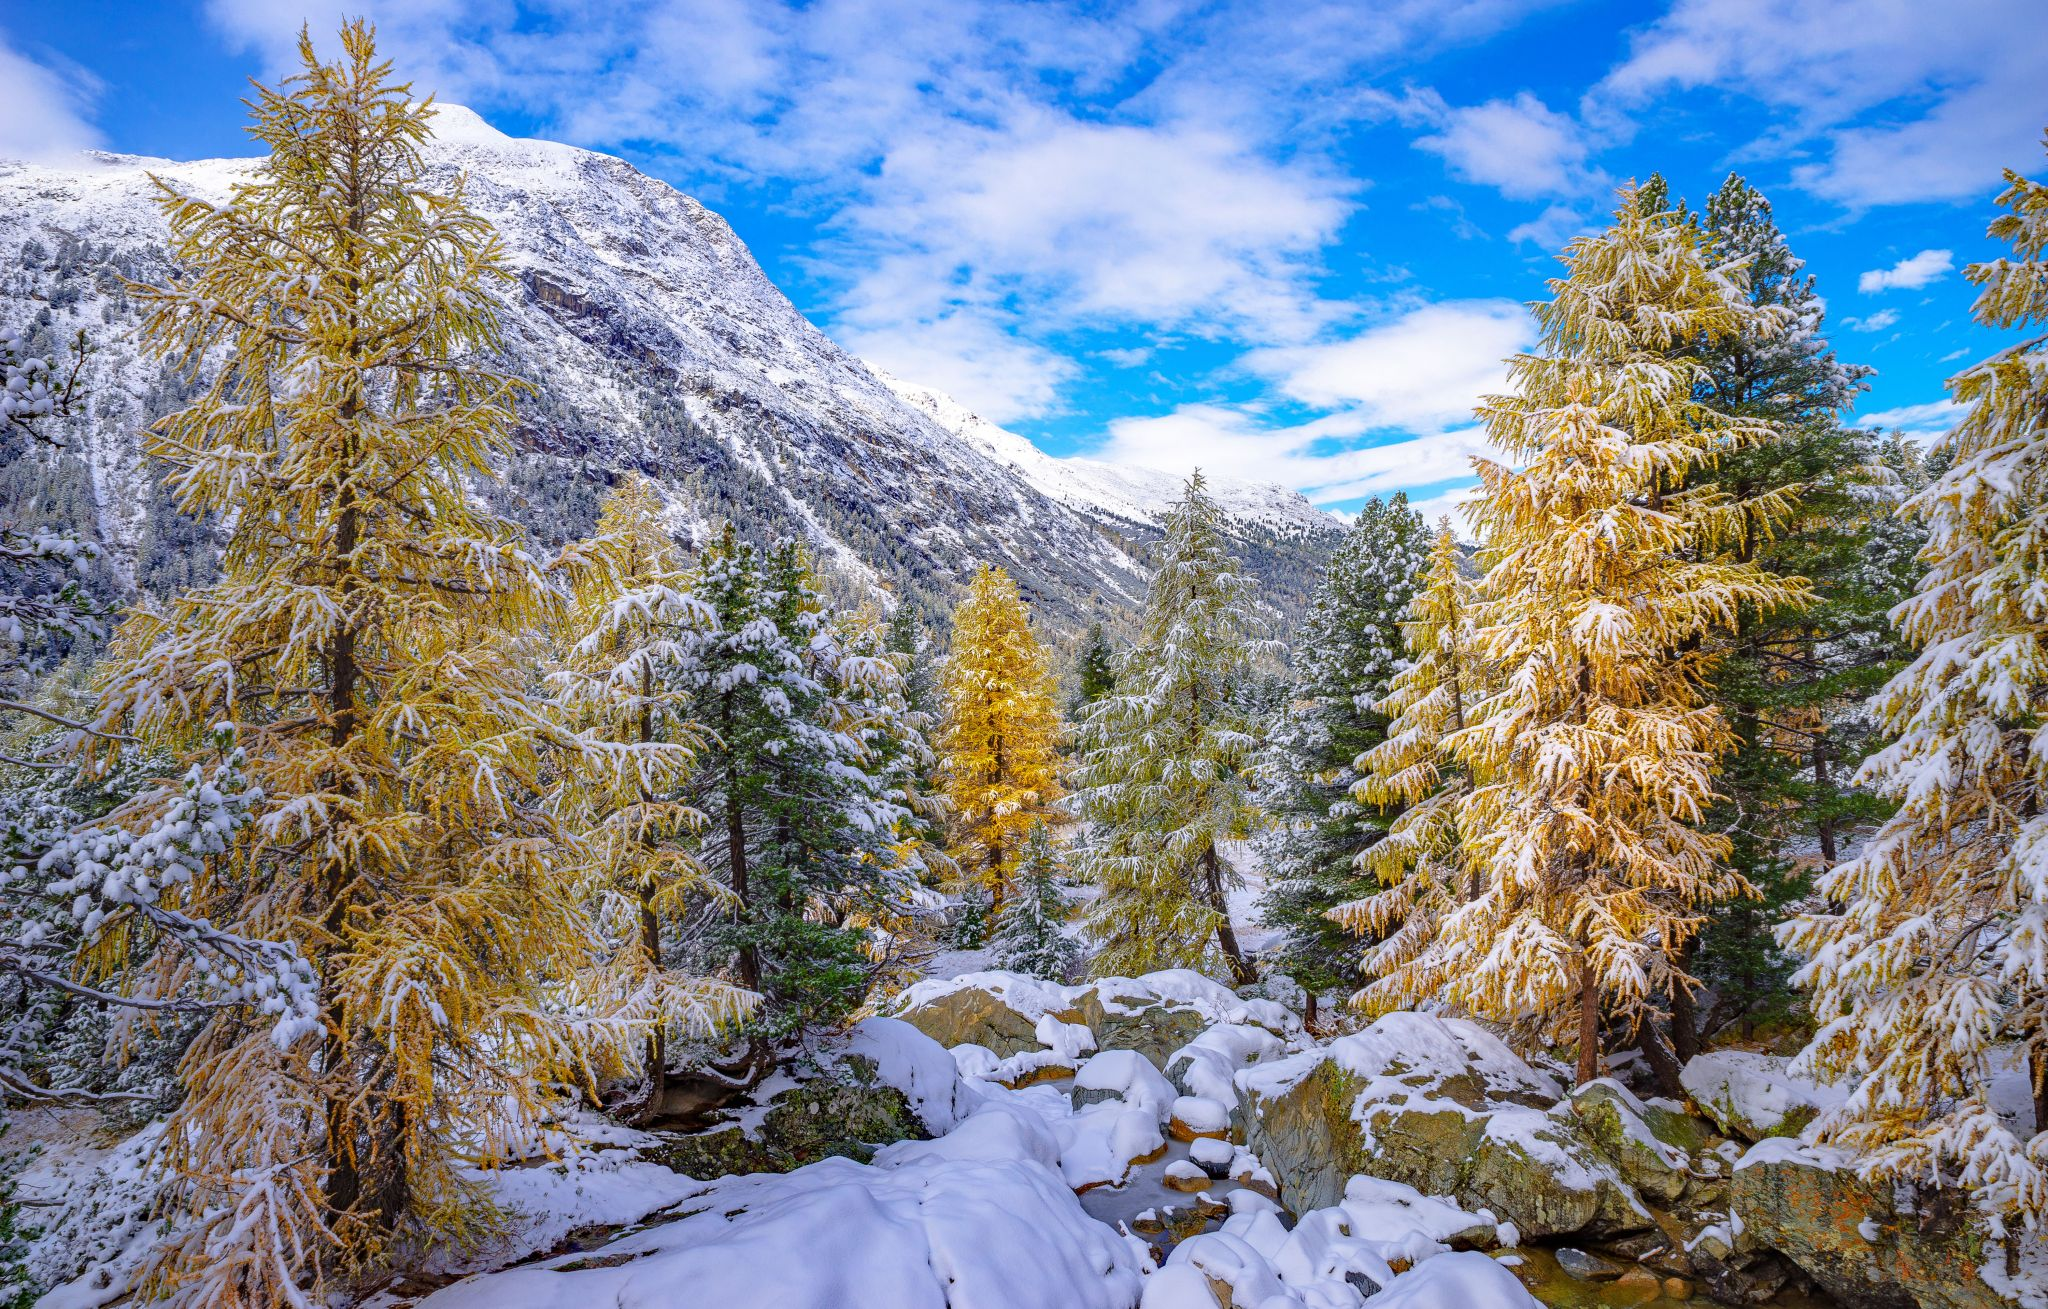 The snow-covered larch gold in the Engadine, Switzerland